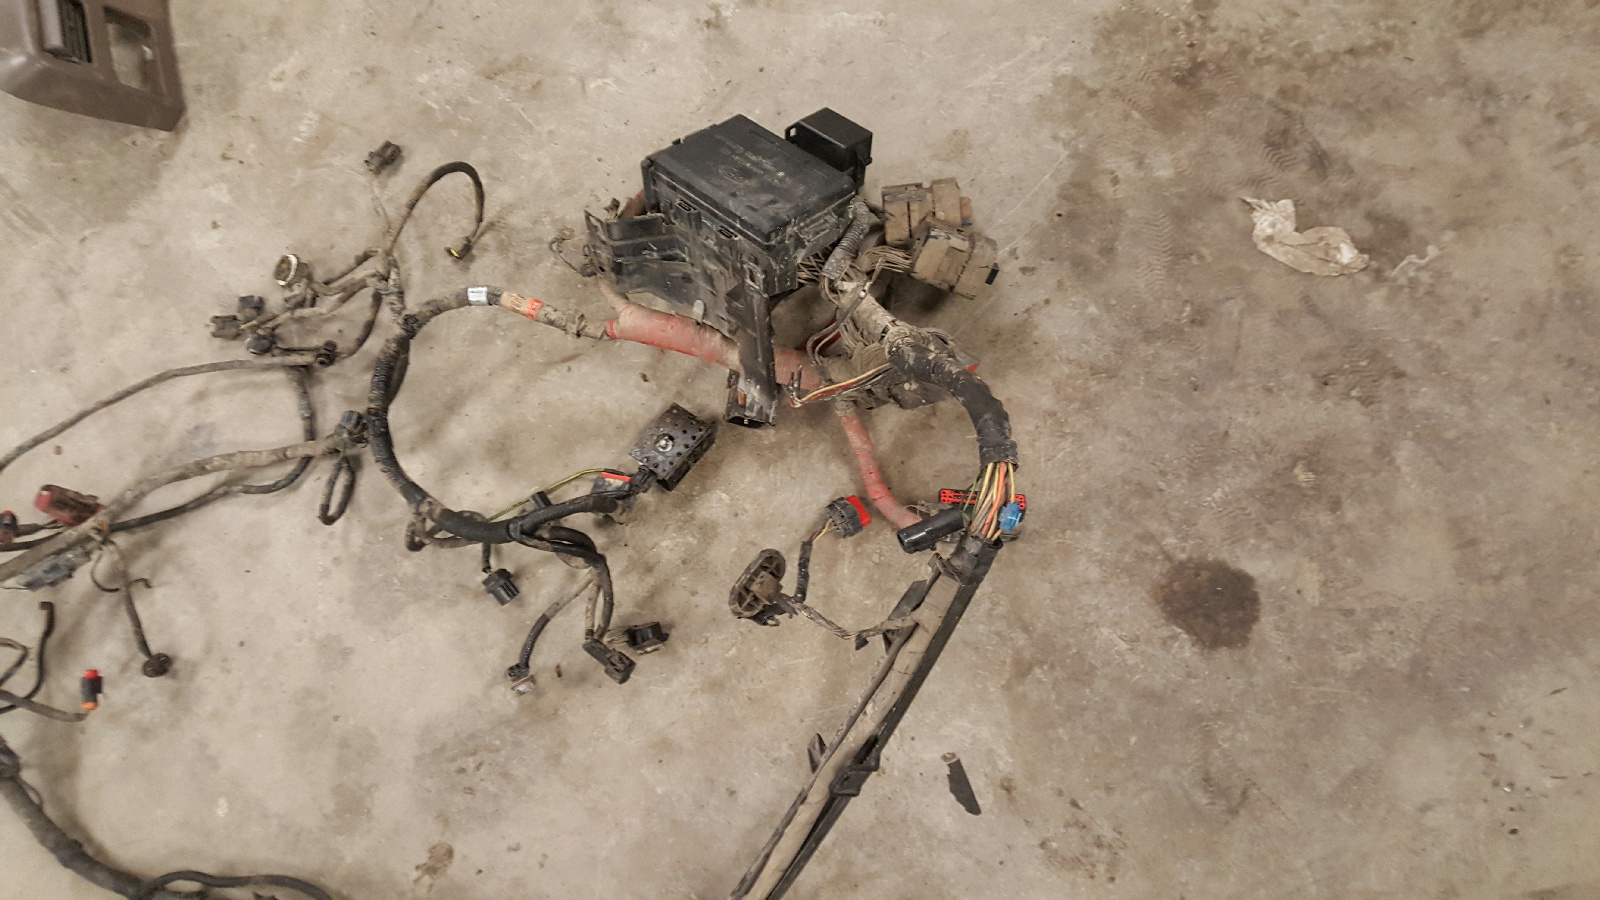 29644011  Ford Engine Wiring Harness on ford 7.3 battery harness, ford 7.3 engine cover, ford 7.3 engine fuel pressure regulator, 7.3 powerstroke engine wiring harness, ford 7.3 injector harness,